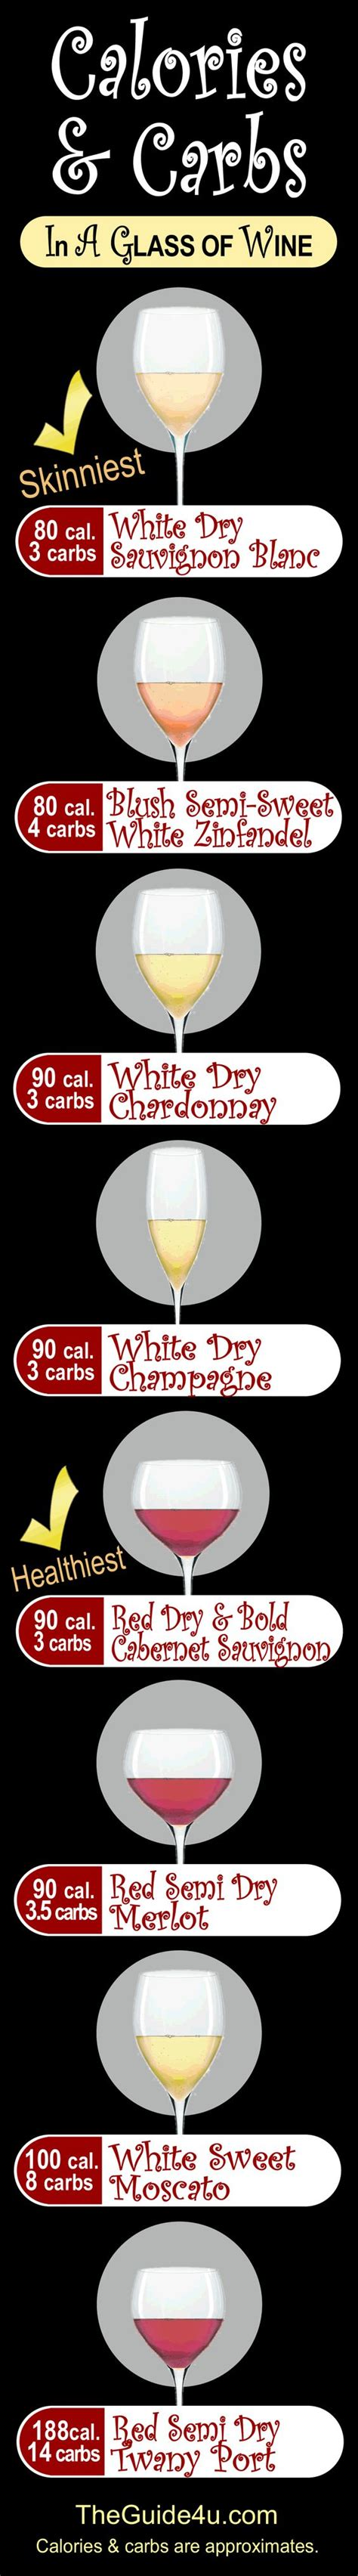 carbohydrates article calories carbohydrates wine chart article http